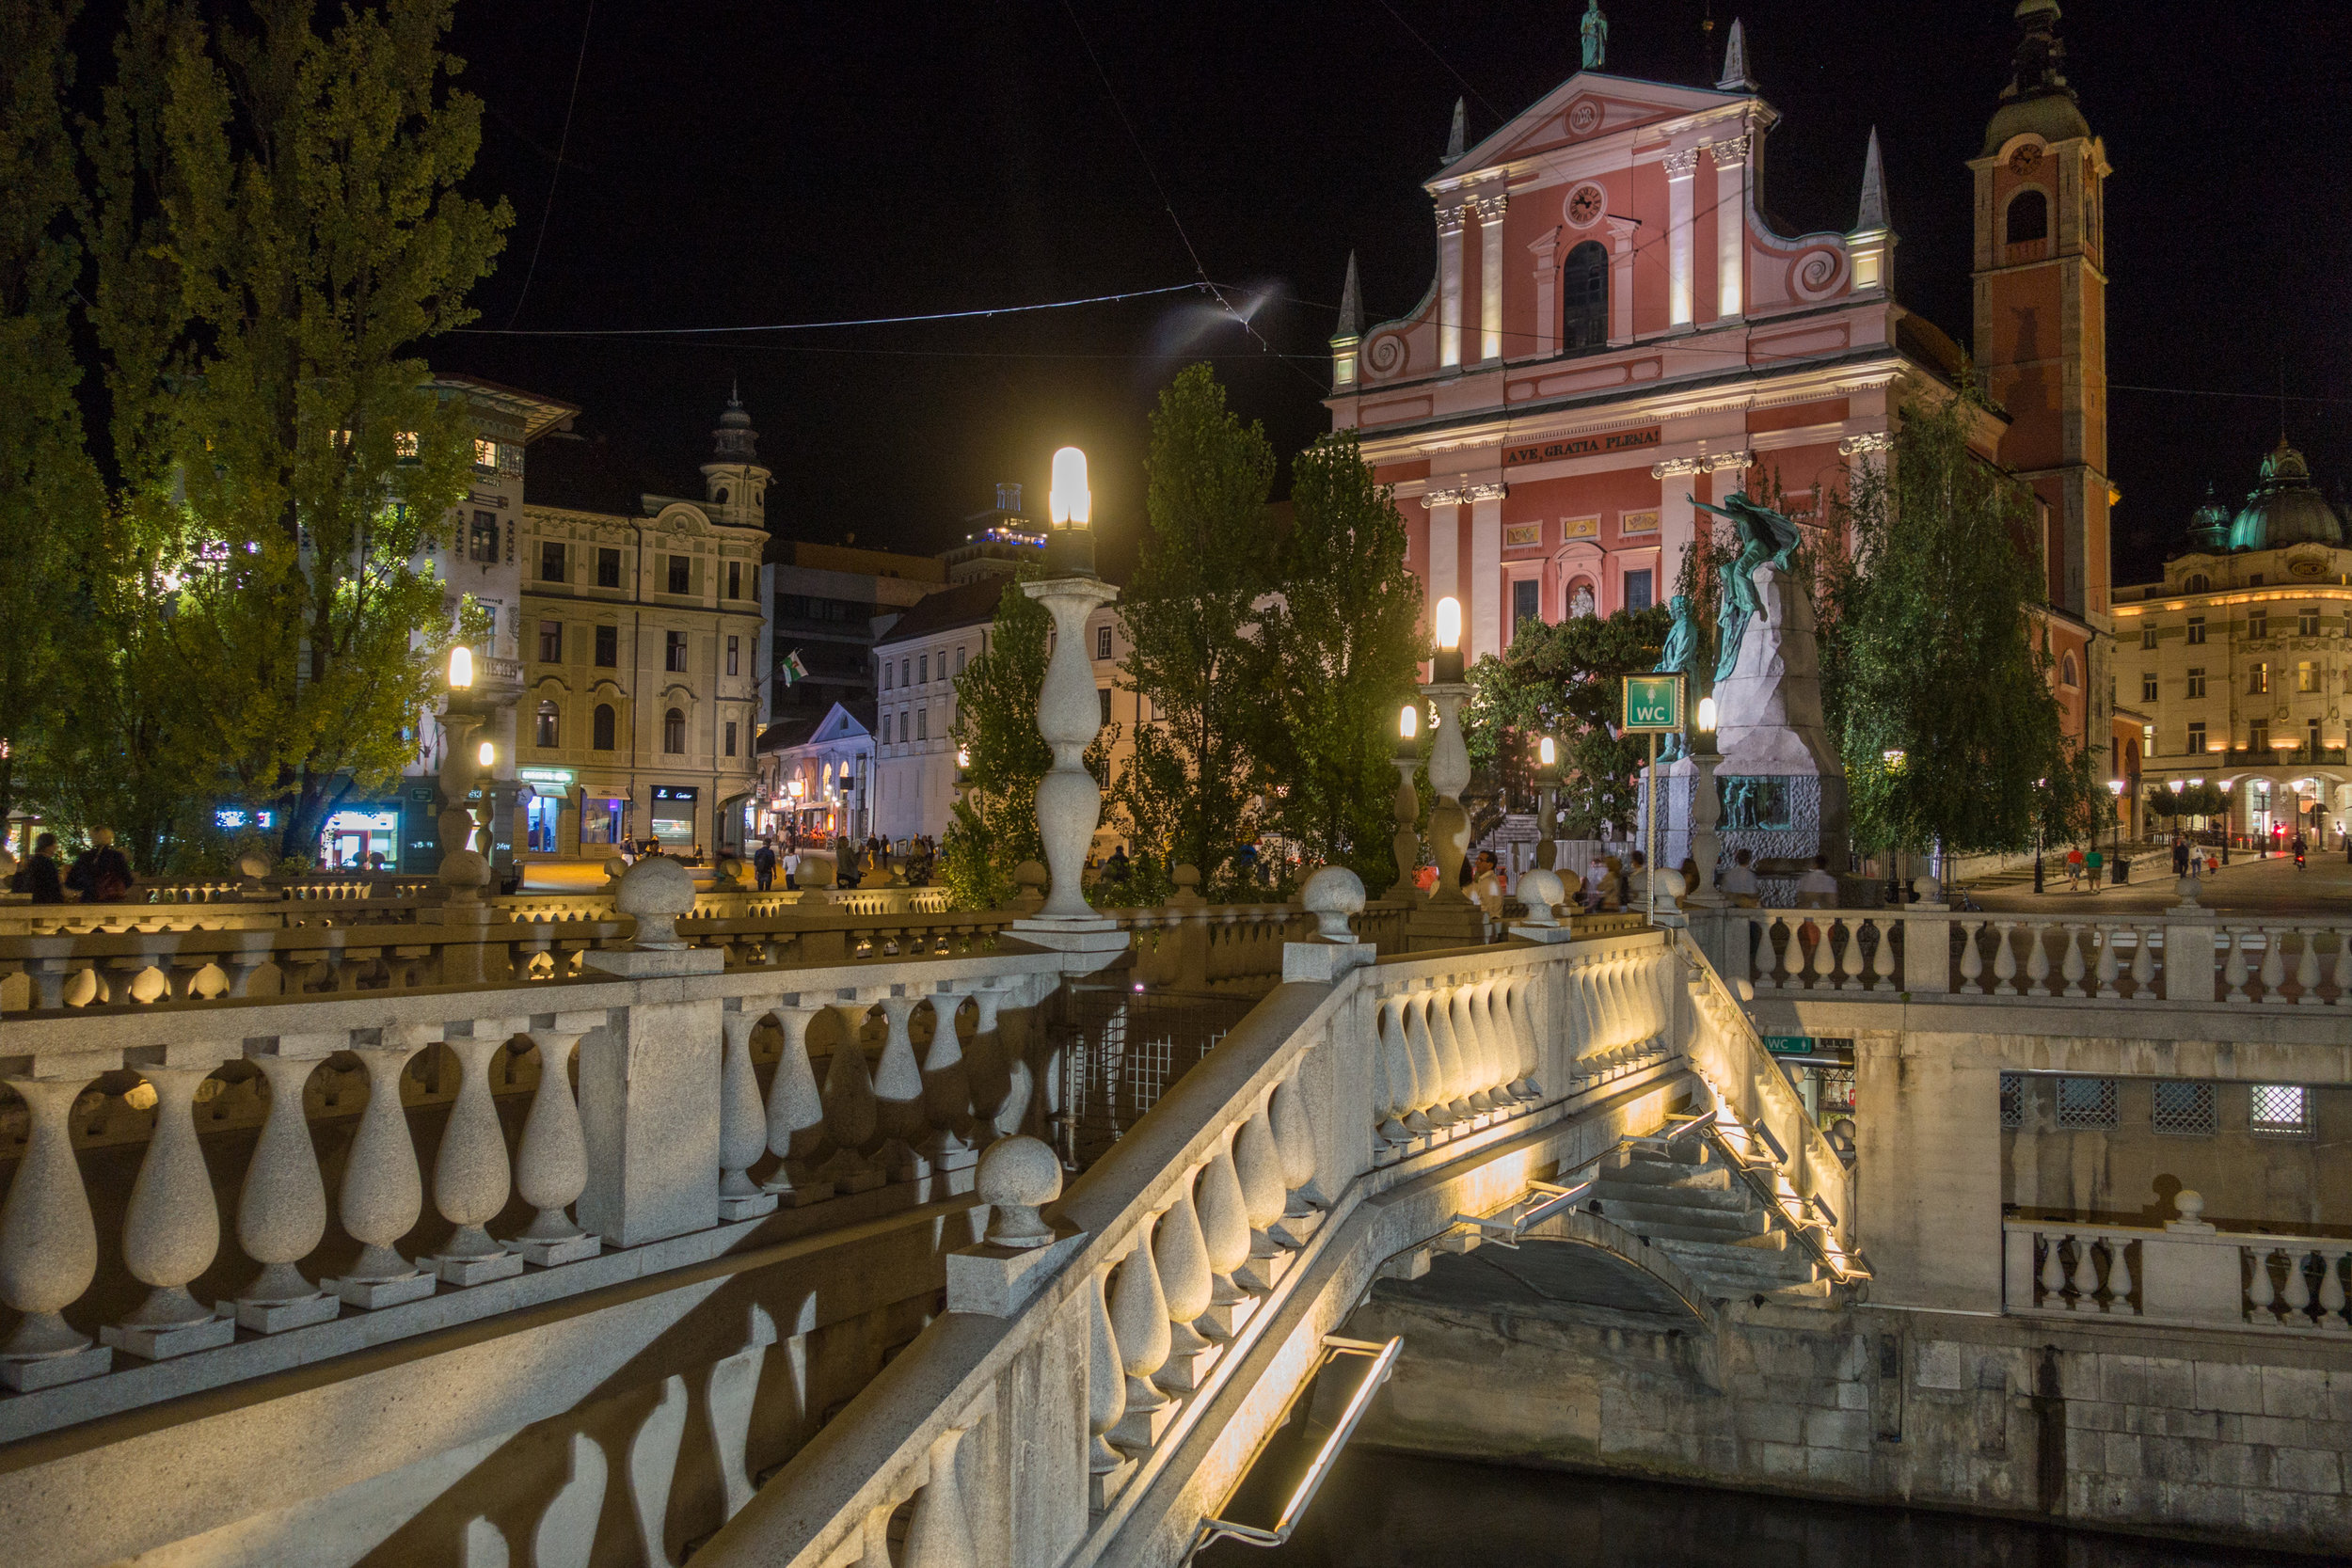 5.) Ljubljana, Slovenia - Stay in the Tivoli Park overnight, then when you are ready to leave, get up early and make the drive to Lake Bled.